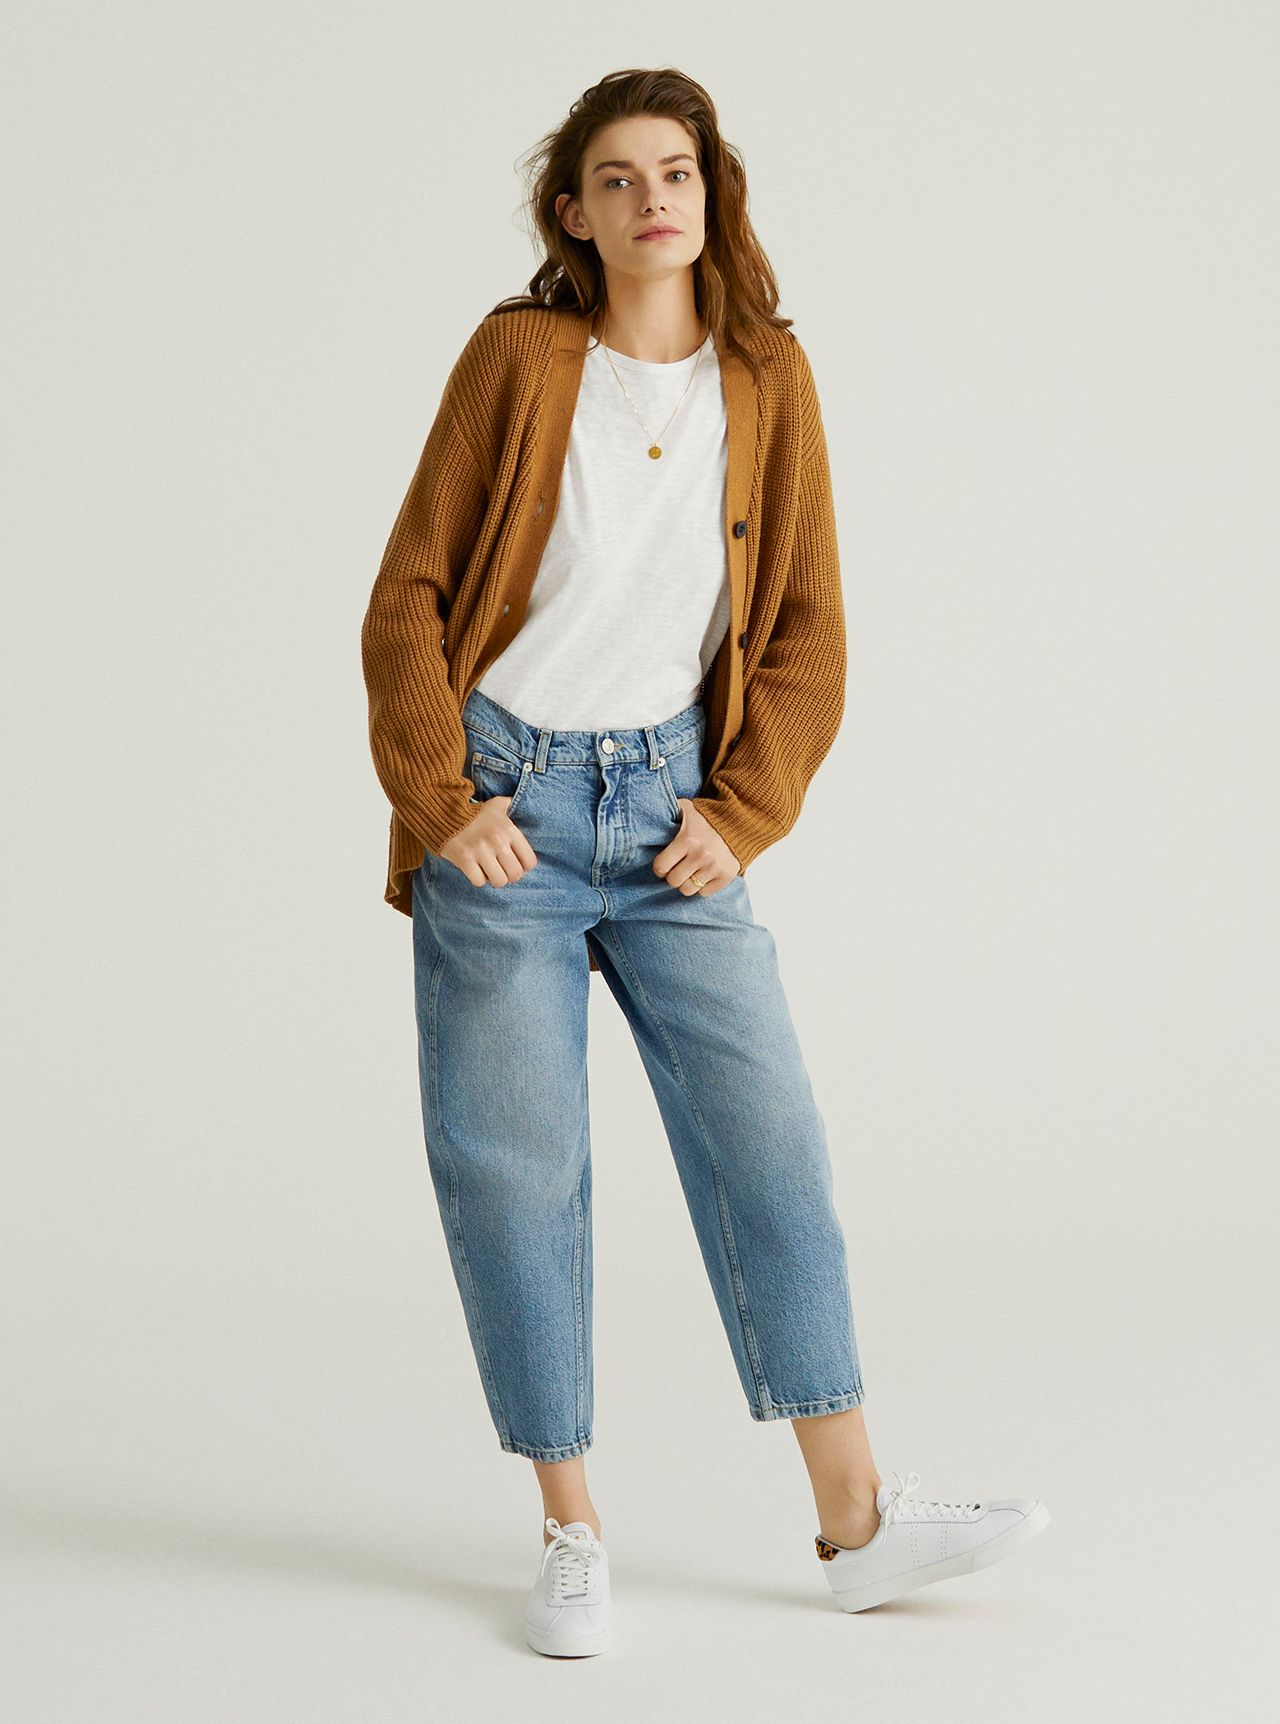 John Lewis & Partners Denim - The Barrel Leg Jean